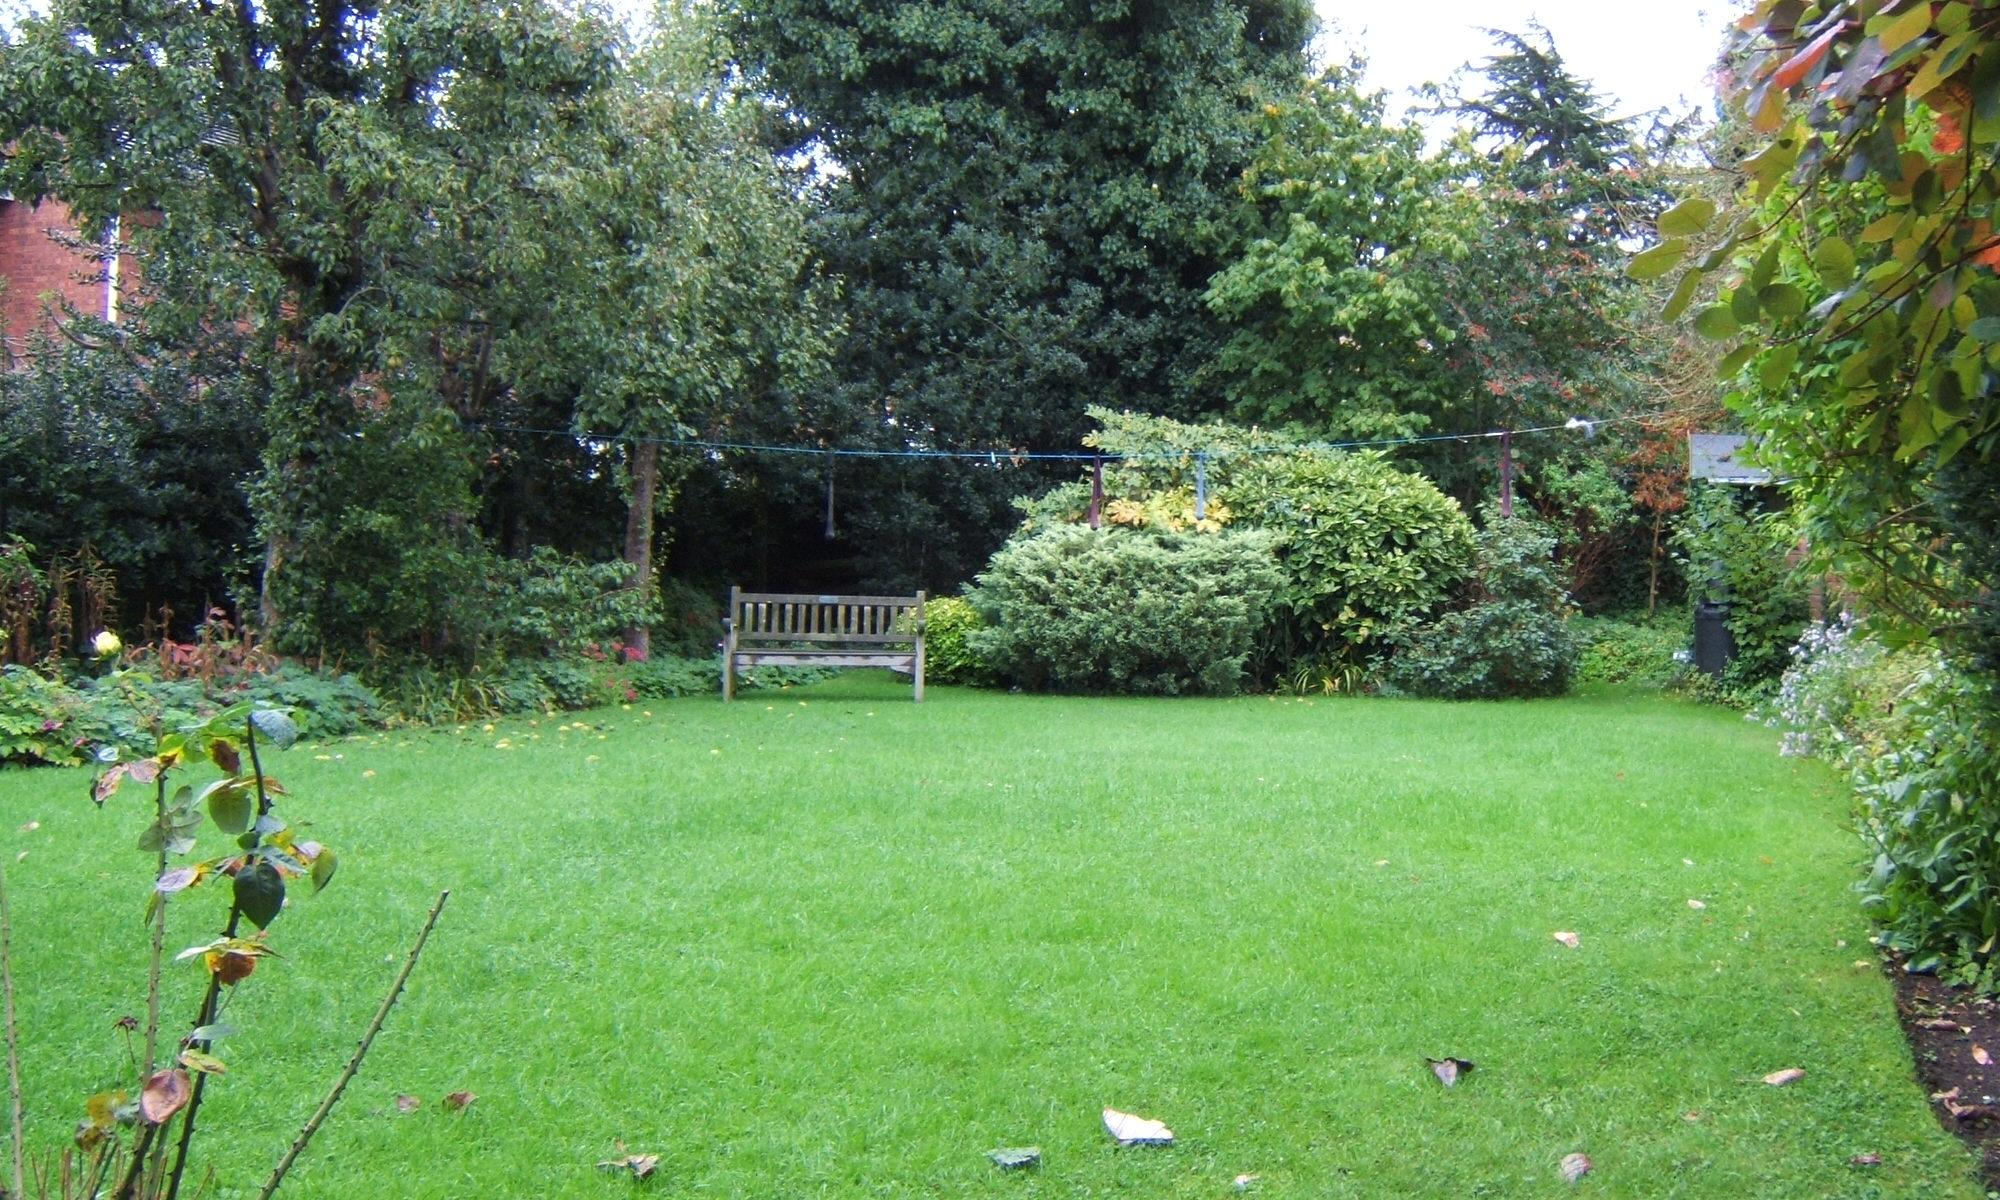 garden with empty lawn and a bench